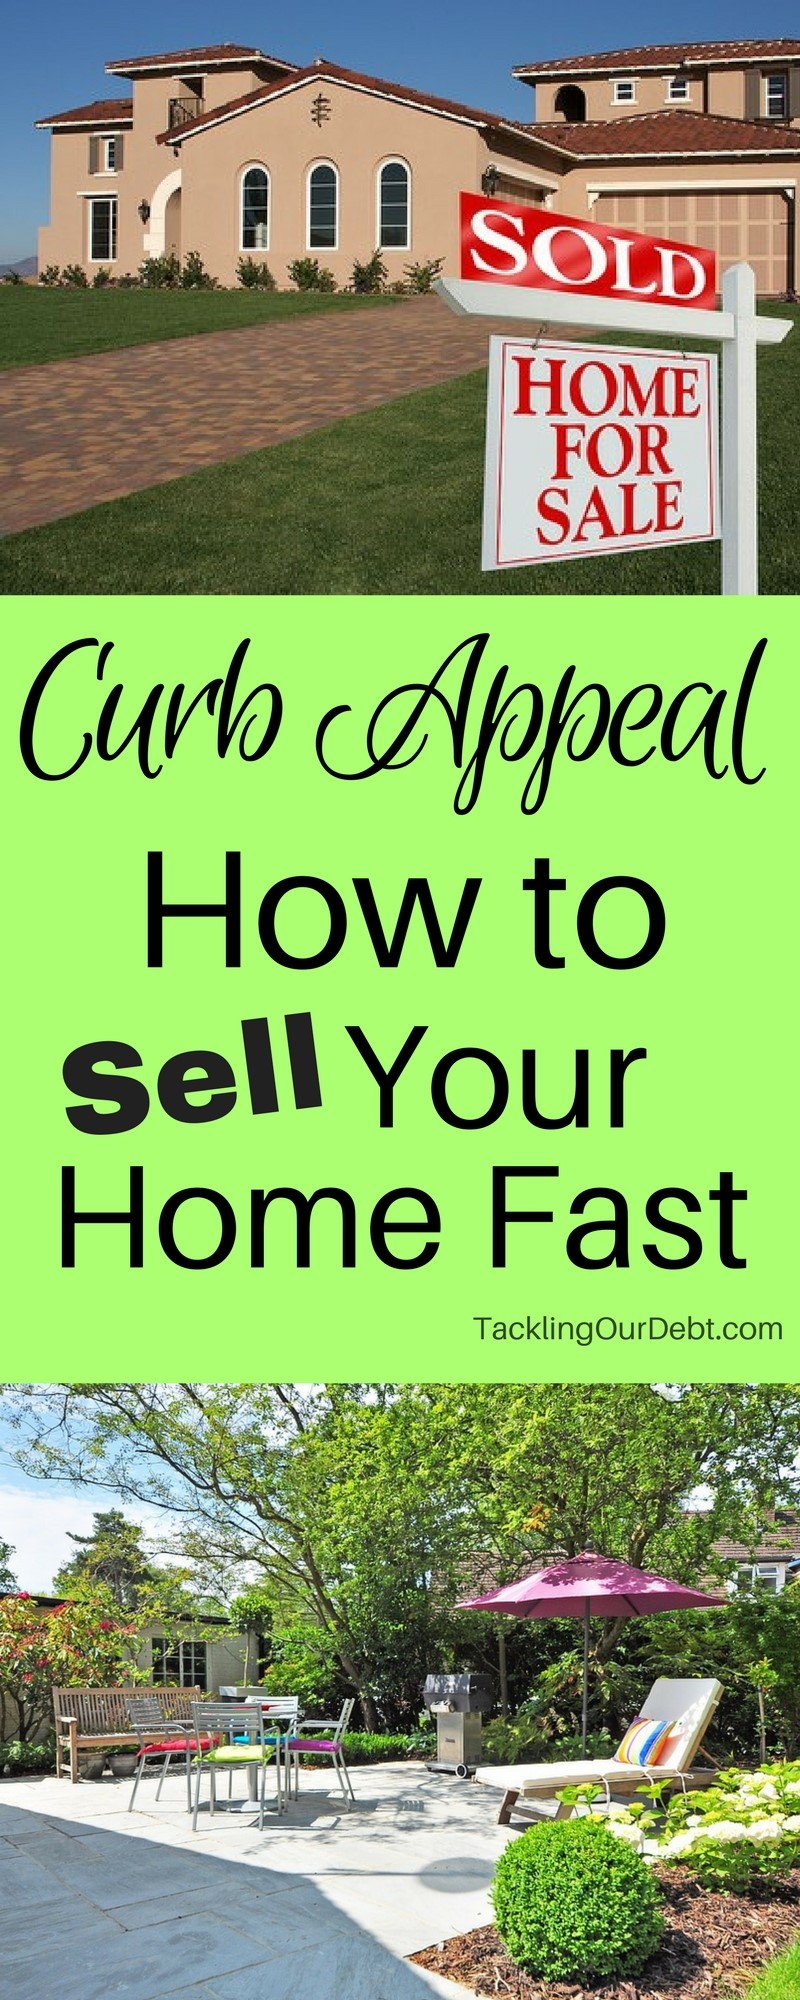 Curb Appeal How to Sell Your Home Fast - Try out a few of these techniques to improve your home before you sell it. By doing these things you will stand out from any competition you may have in your area, and chances are very good that your house will sell quicker and for more money than the others.